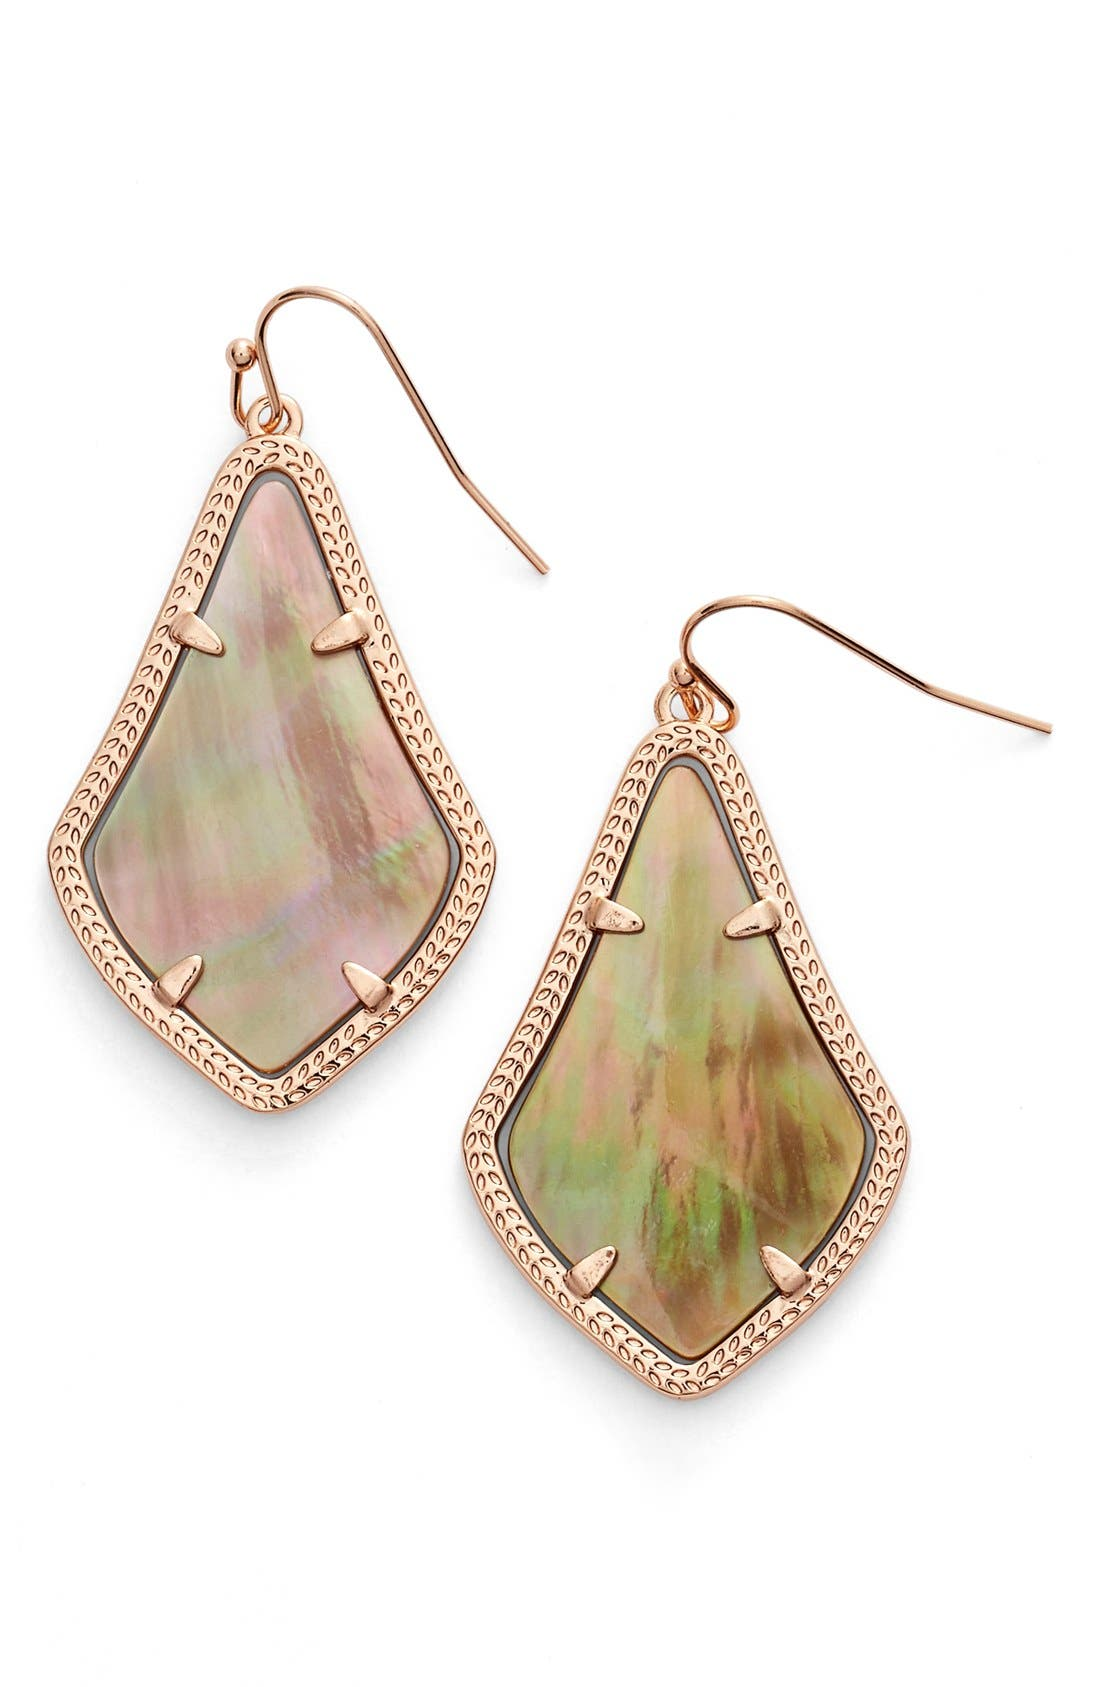 Kendra Scott Alex Drop Earrings